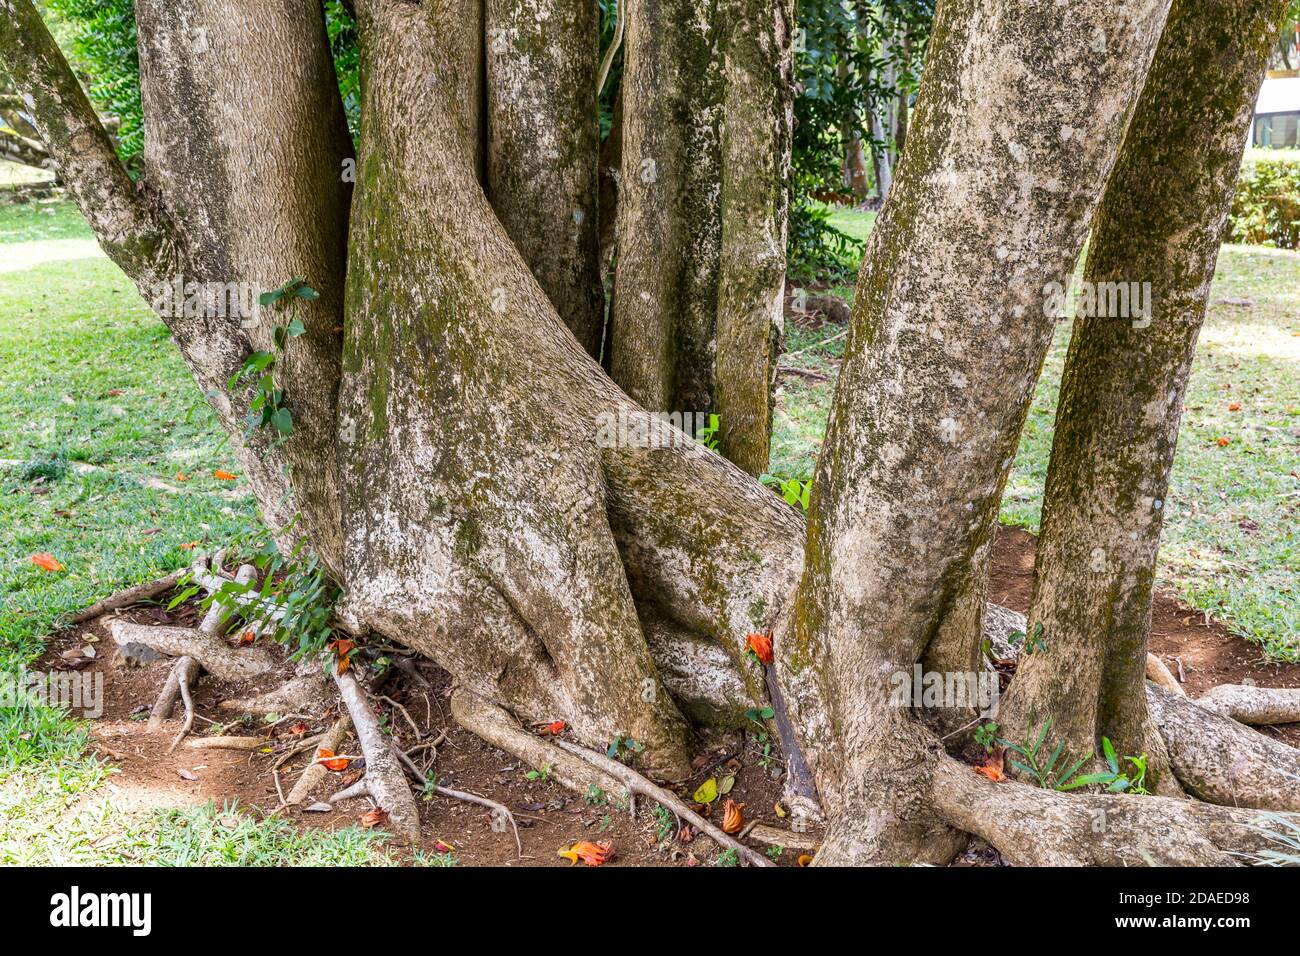 Tree trunk from the kapok tree, garden with exotic plants, rum distillery Le Saint Aubin, founded in 1819, Saint Aubin, Mauritius, Africa, Indian Ocean Stock Photo